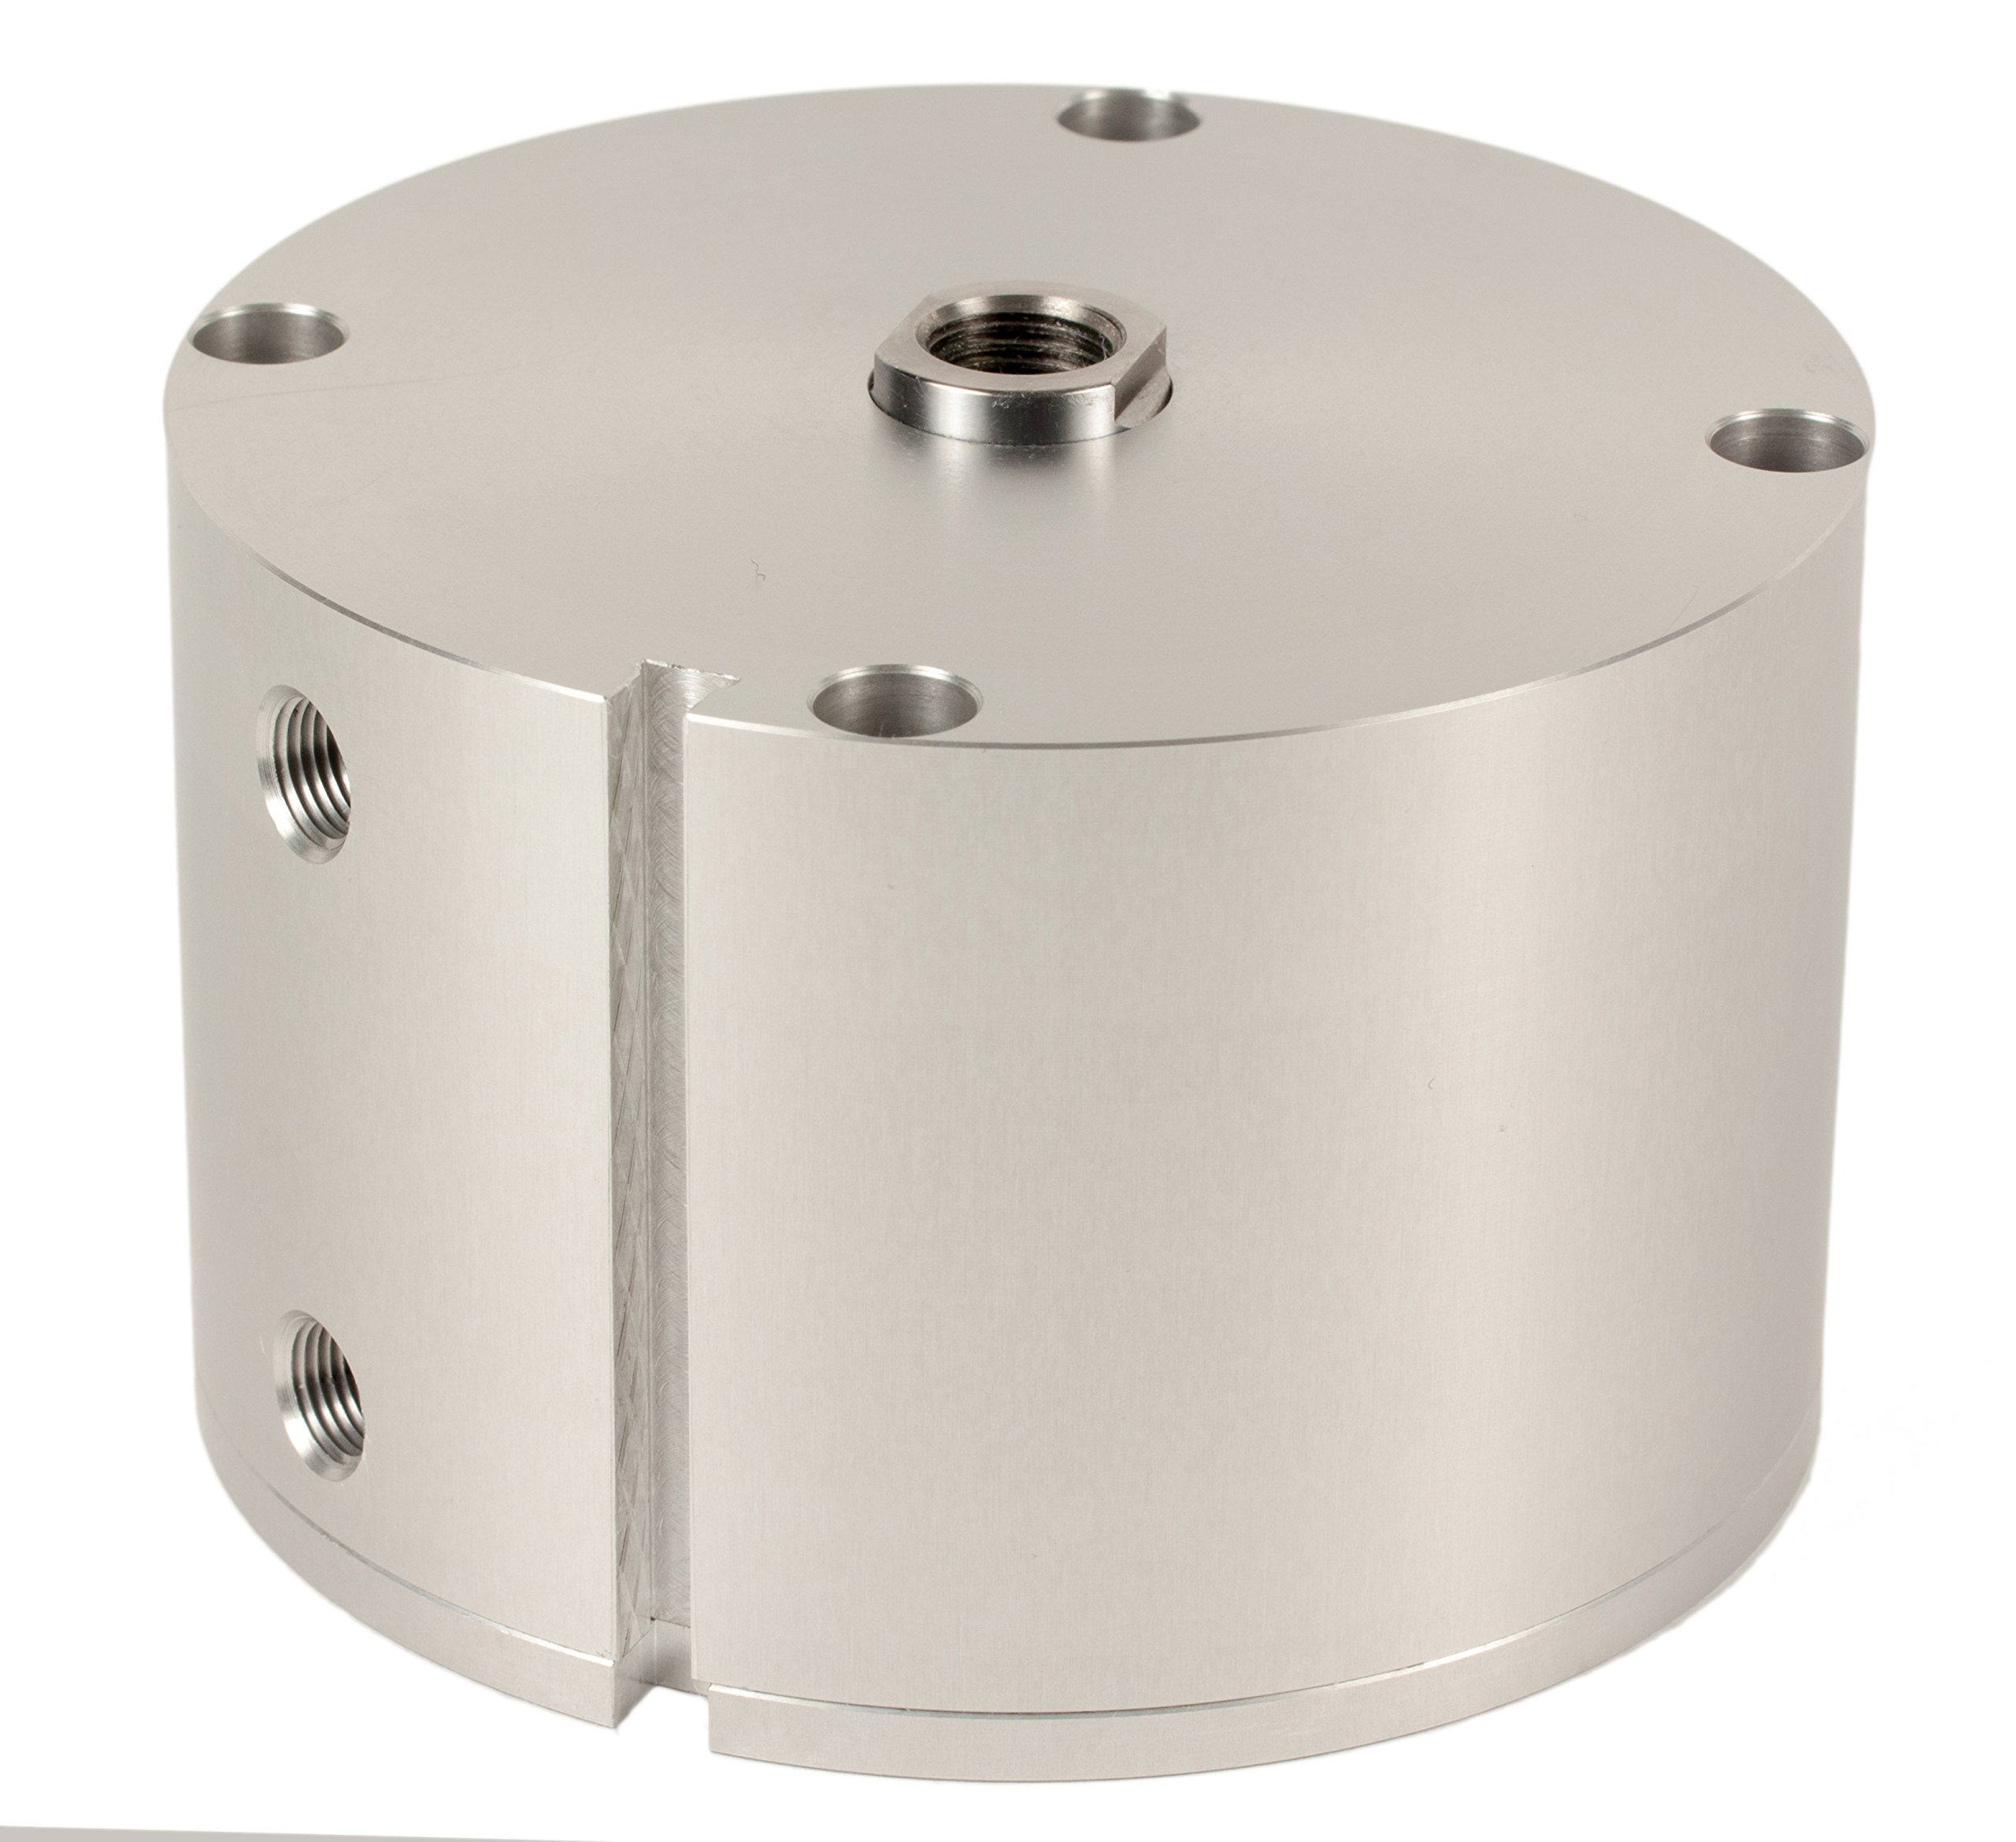 Fabco-Air F-721-X-E Original Pancake Cylinder, Double Acting, Maximum Pressure of 250 PSI, Switch Ready with Magnet, 3'' Bore Diameter x 3'' Stroke